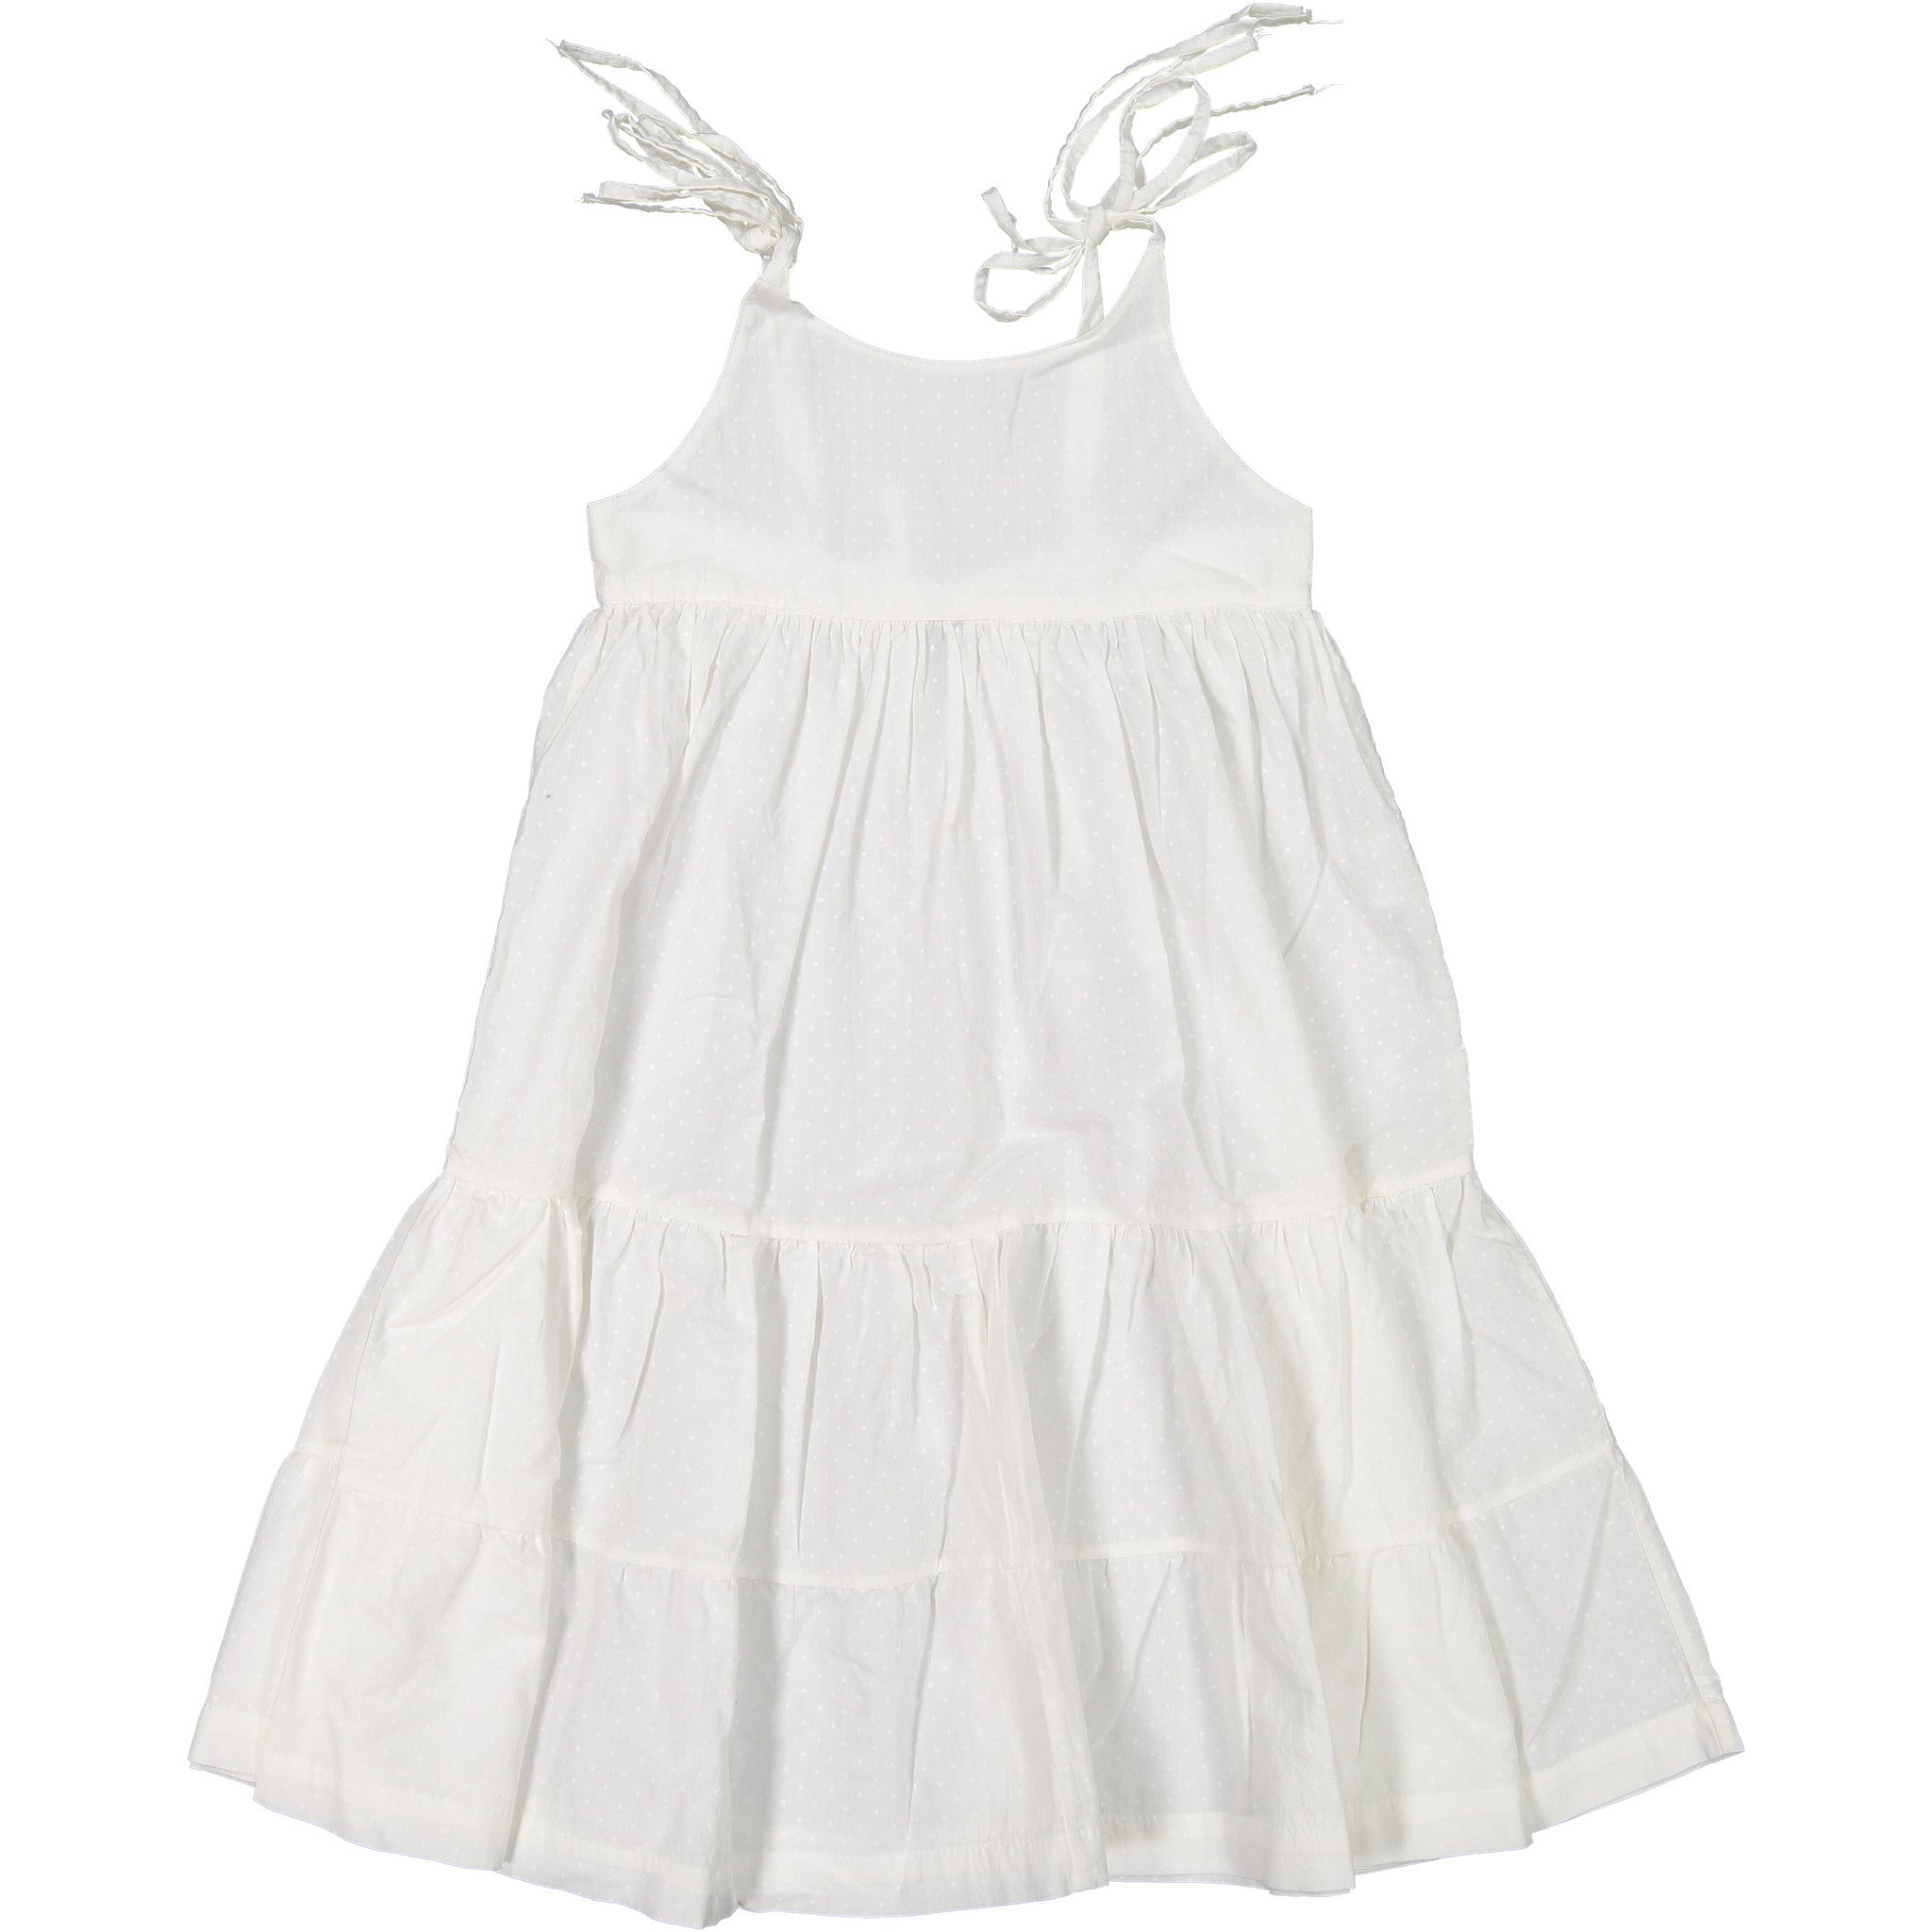 Atelier Barn White Dot Sundress - Ladida